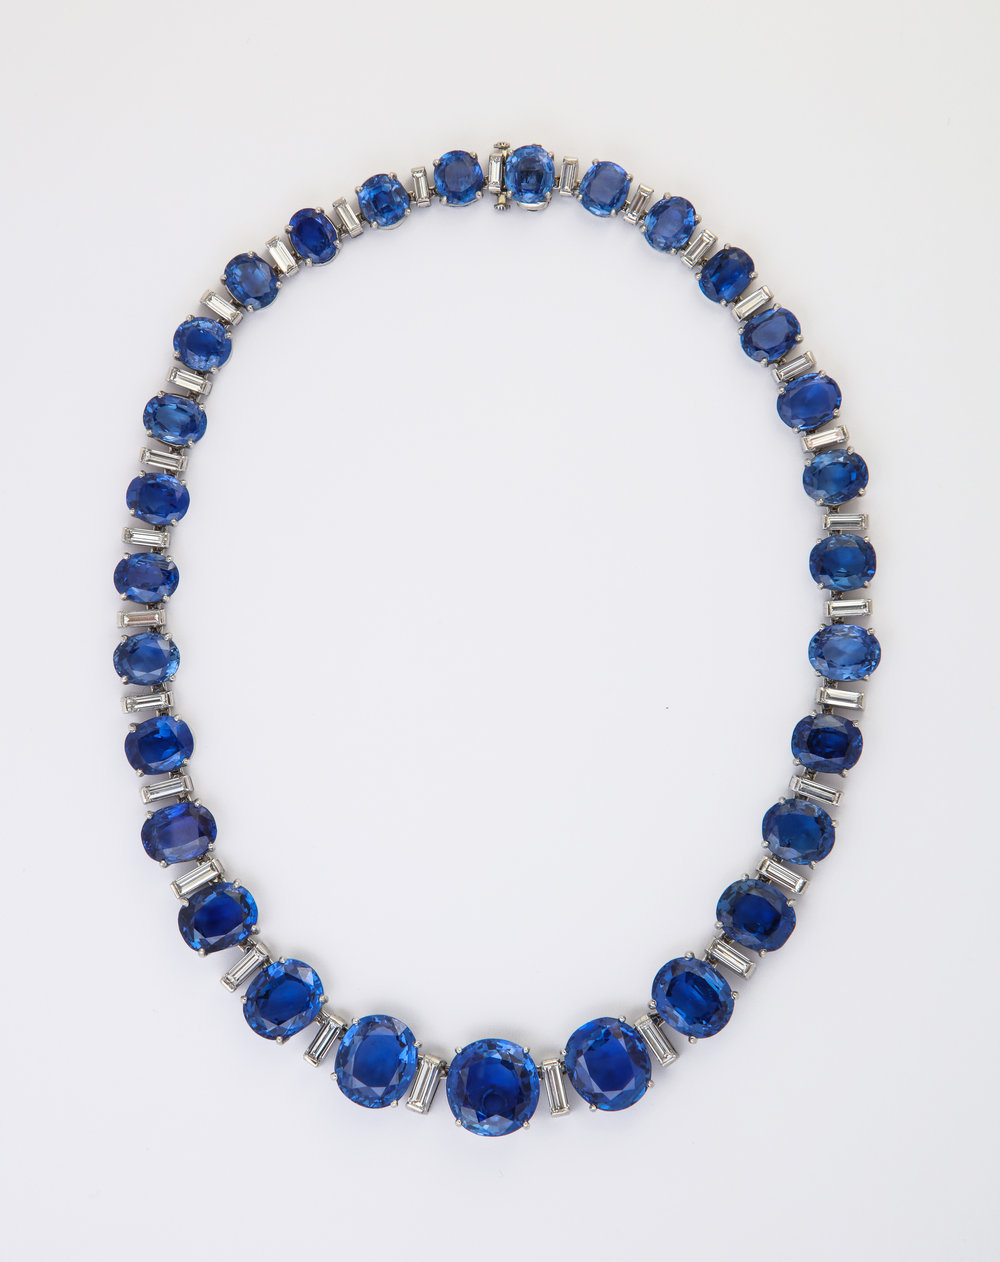 Oscar Heyman and Bros. - All natural ceylon sapphires with certificates